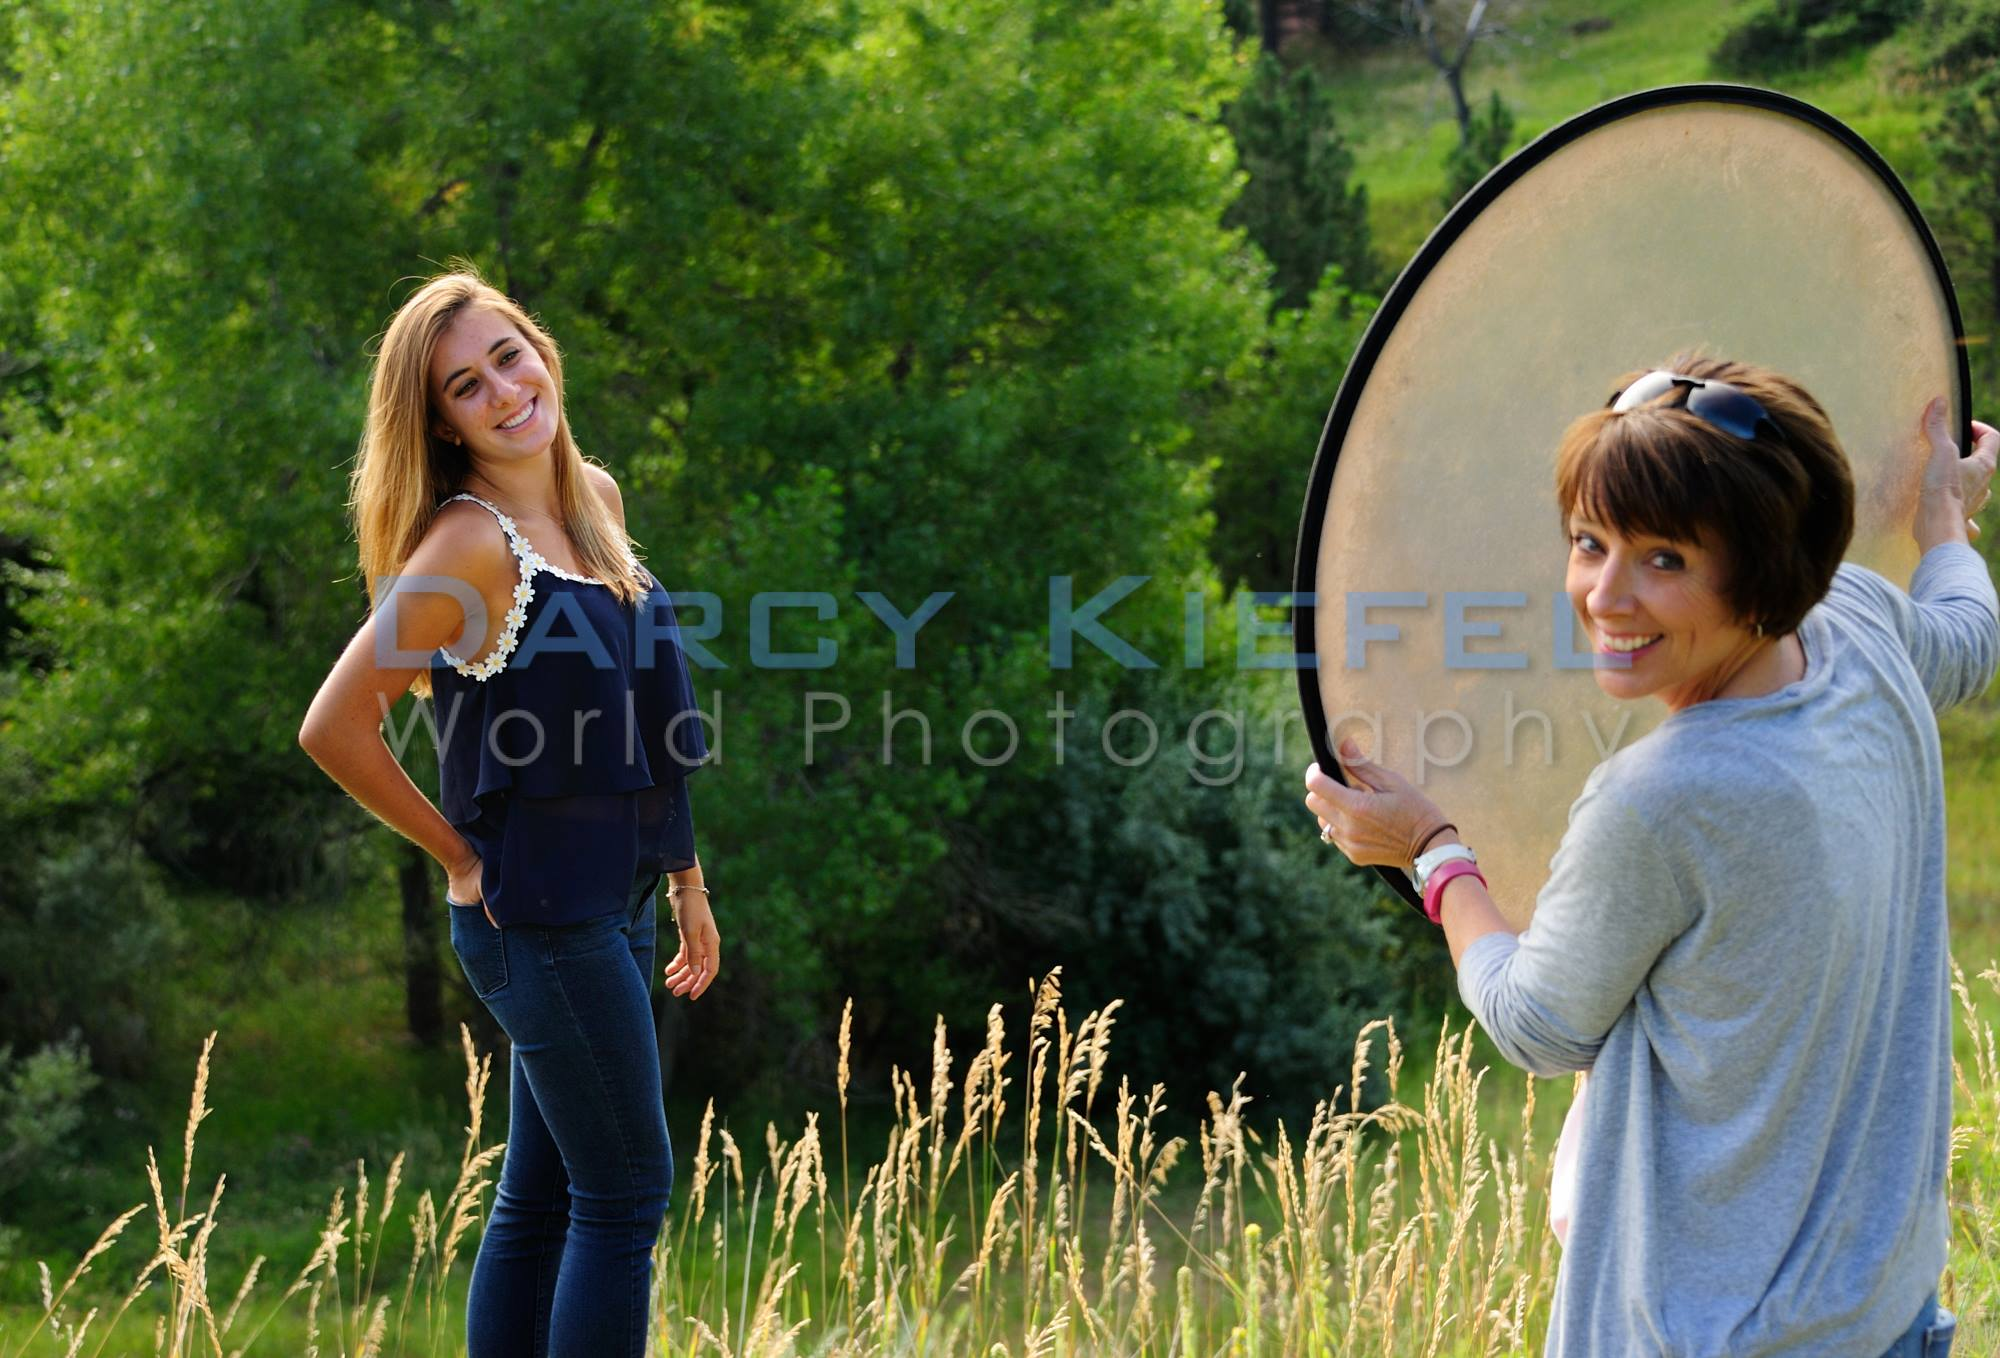 beautiful outdoor senior portrait